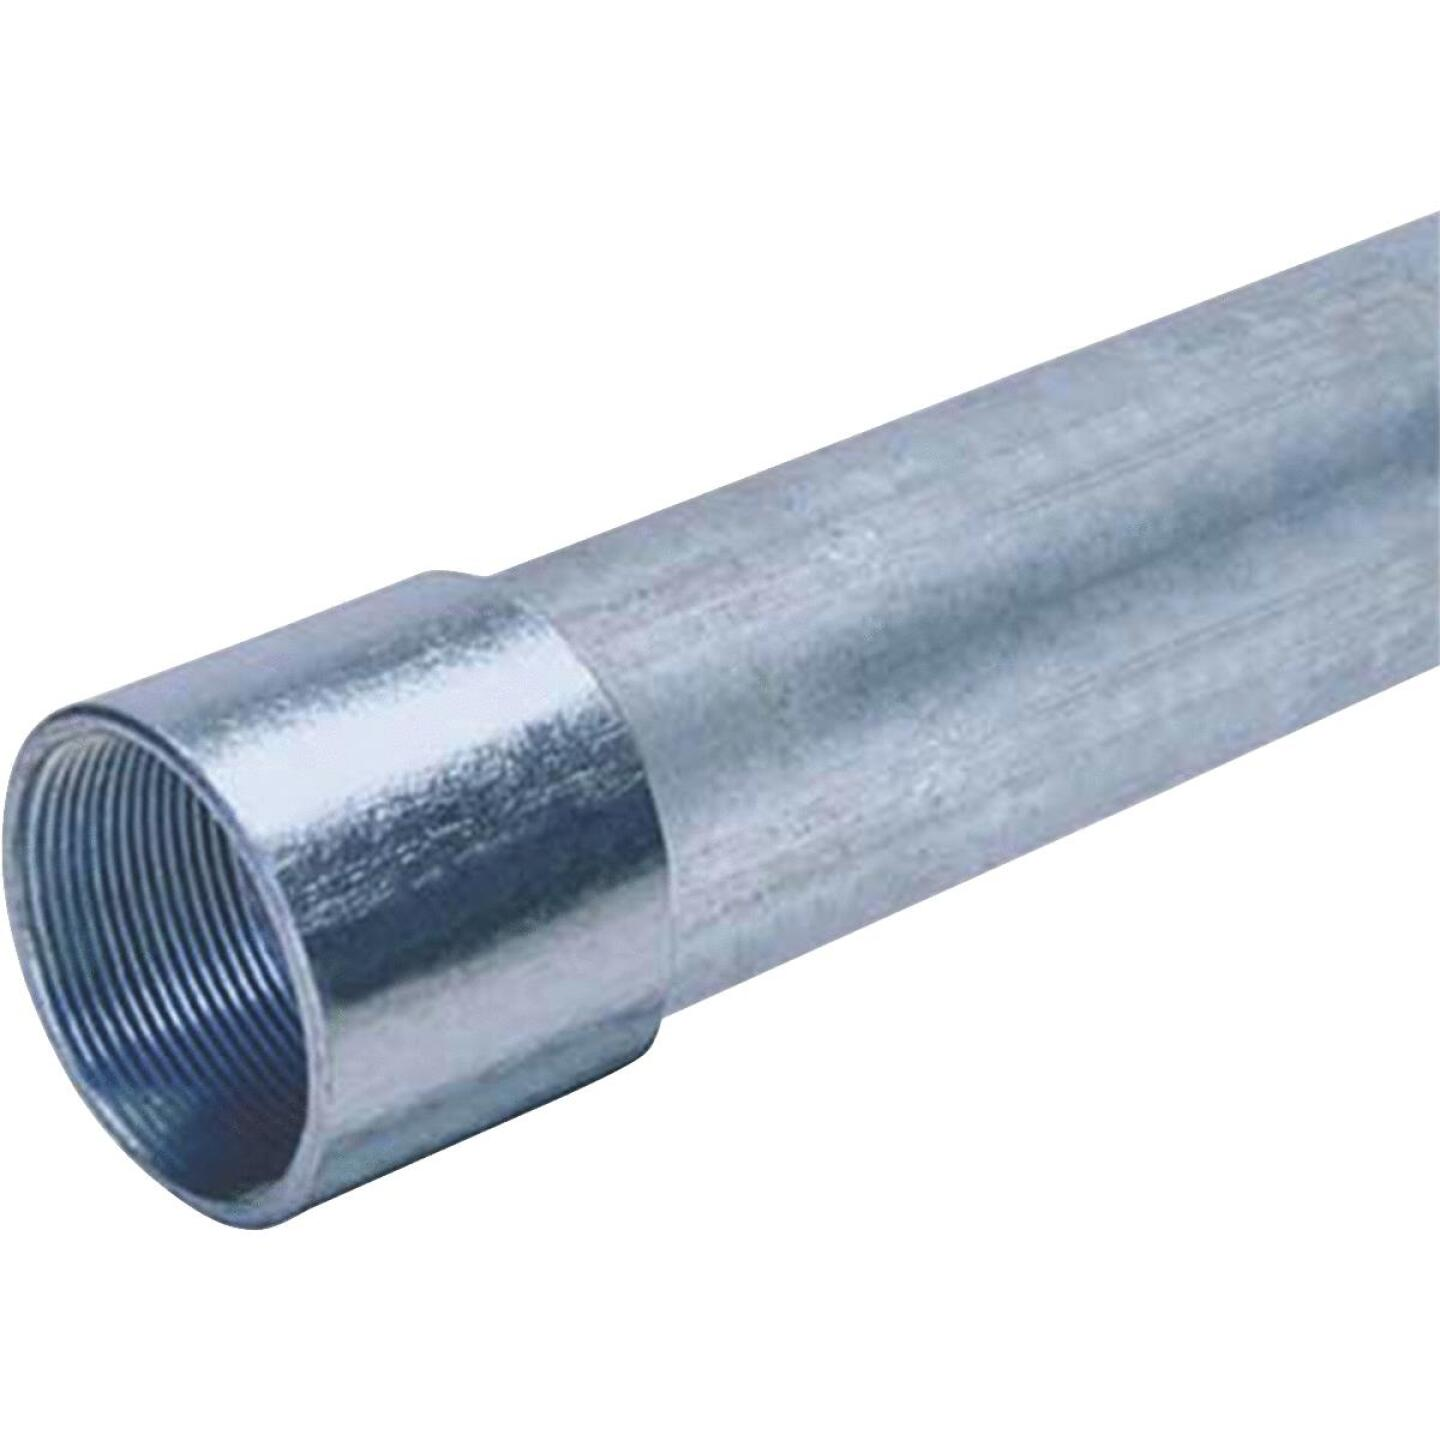 Southland  2 In. x 10 Ft. IMC Steel Conduit Image 1